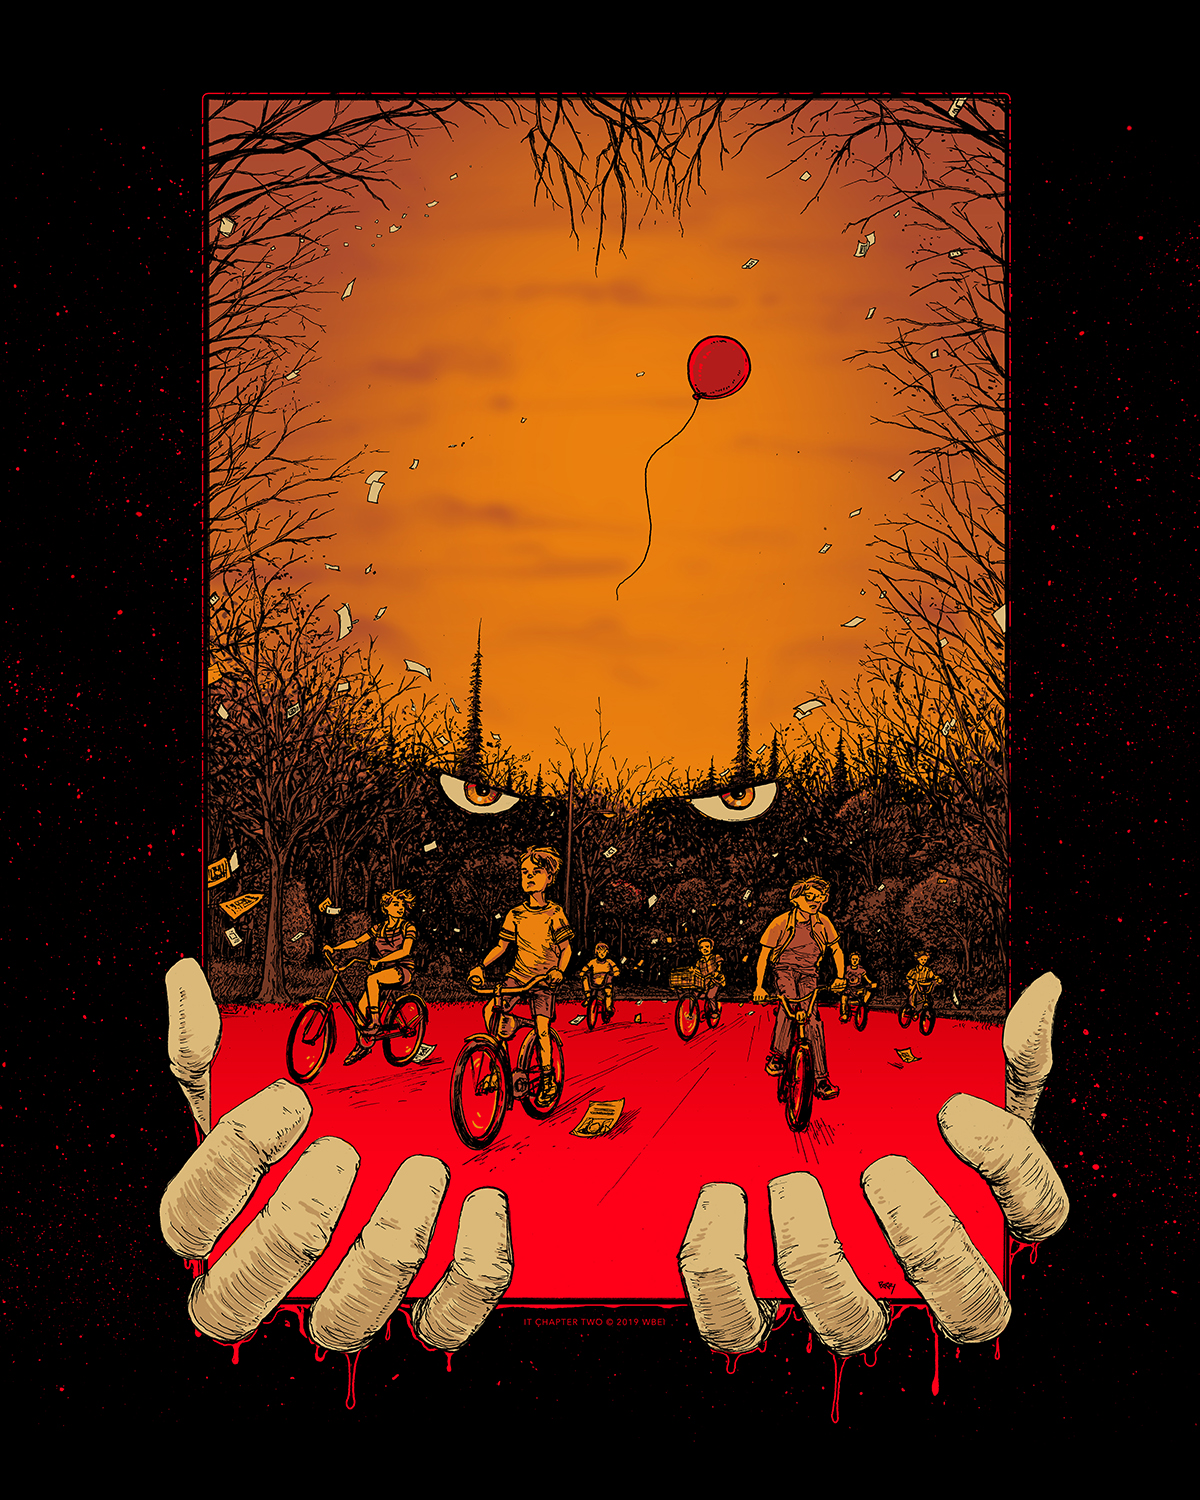 16x20_poster_it2_Barry_blankenship_lowres_web.jpg